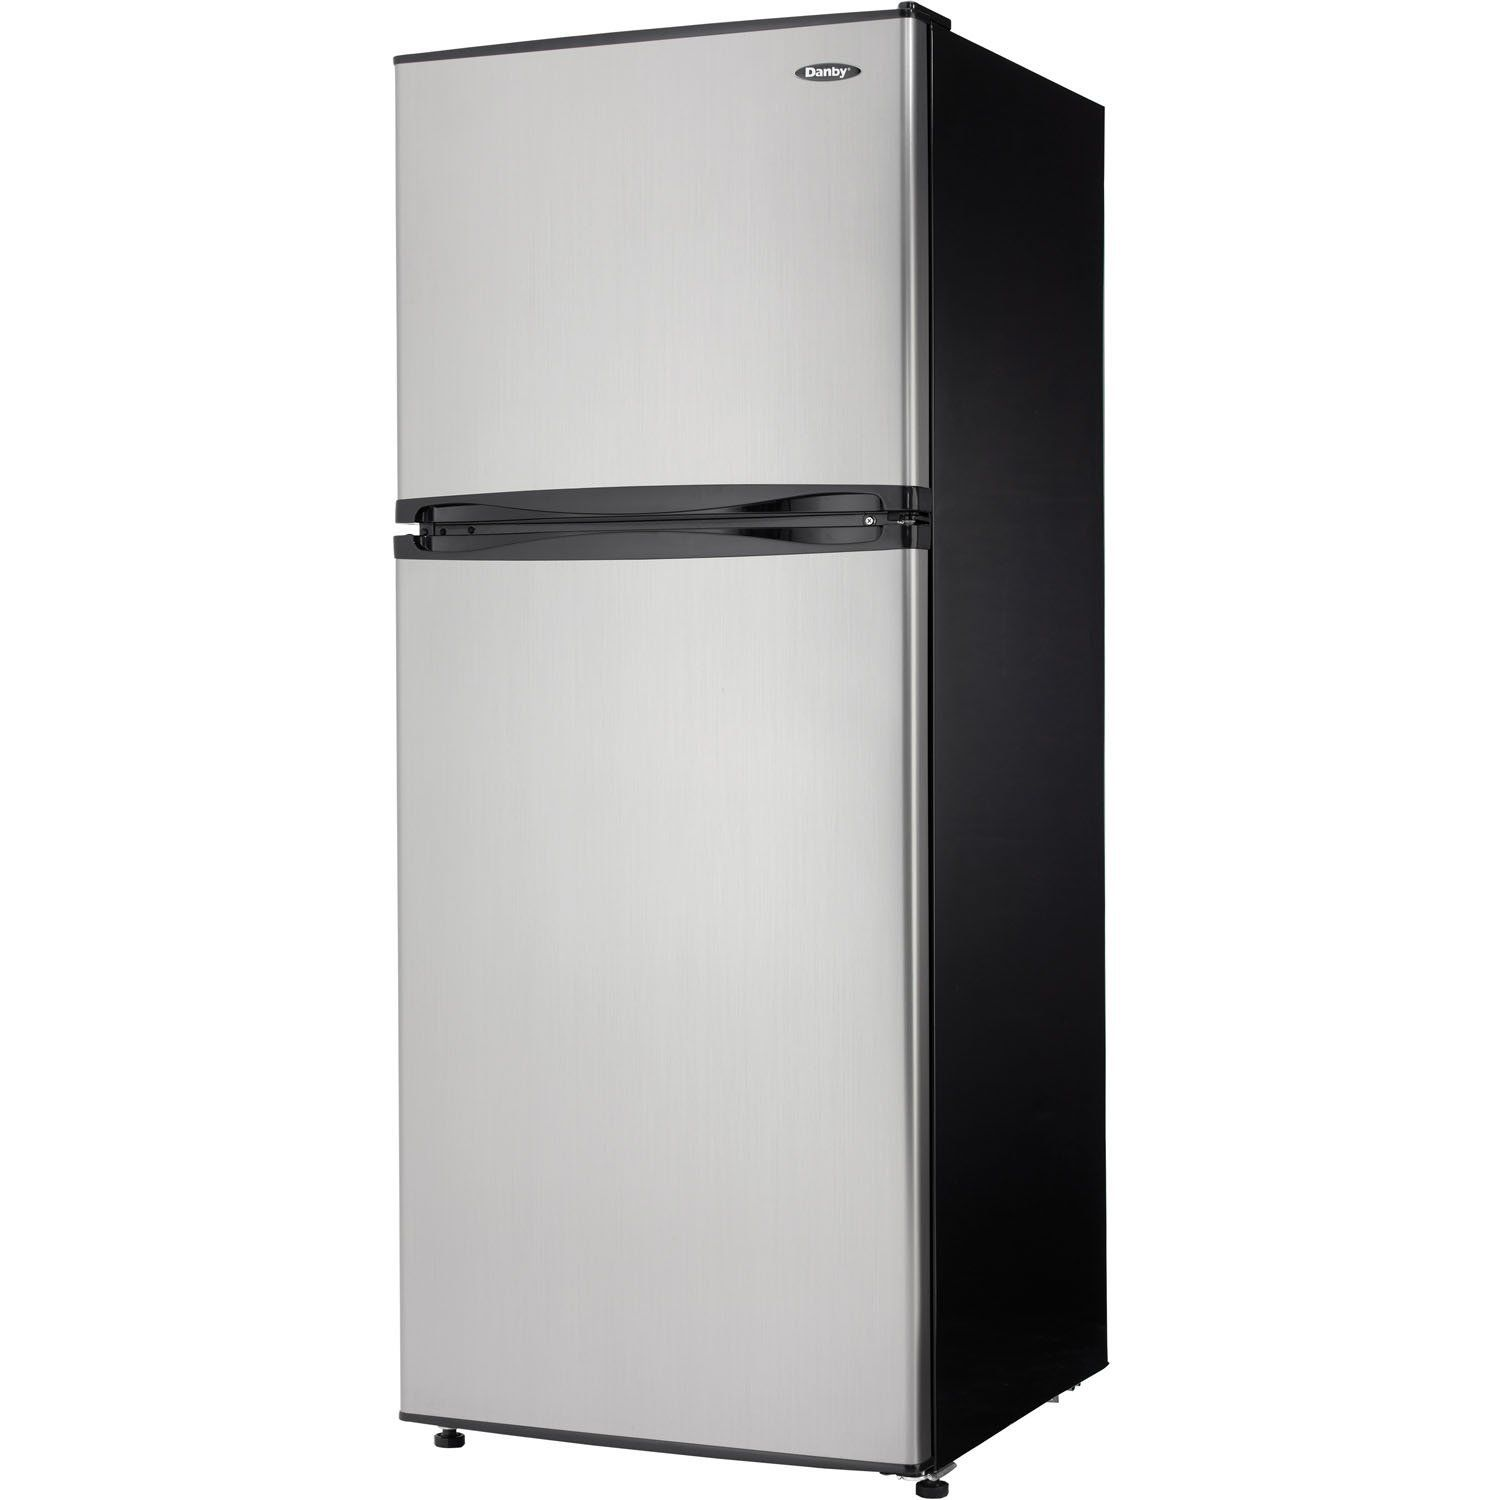 Danby DFF100C1BSLDB Refrigerator with Top-Mount Freezer, 9.9 Cubic ...